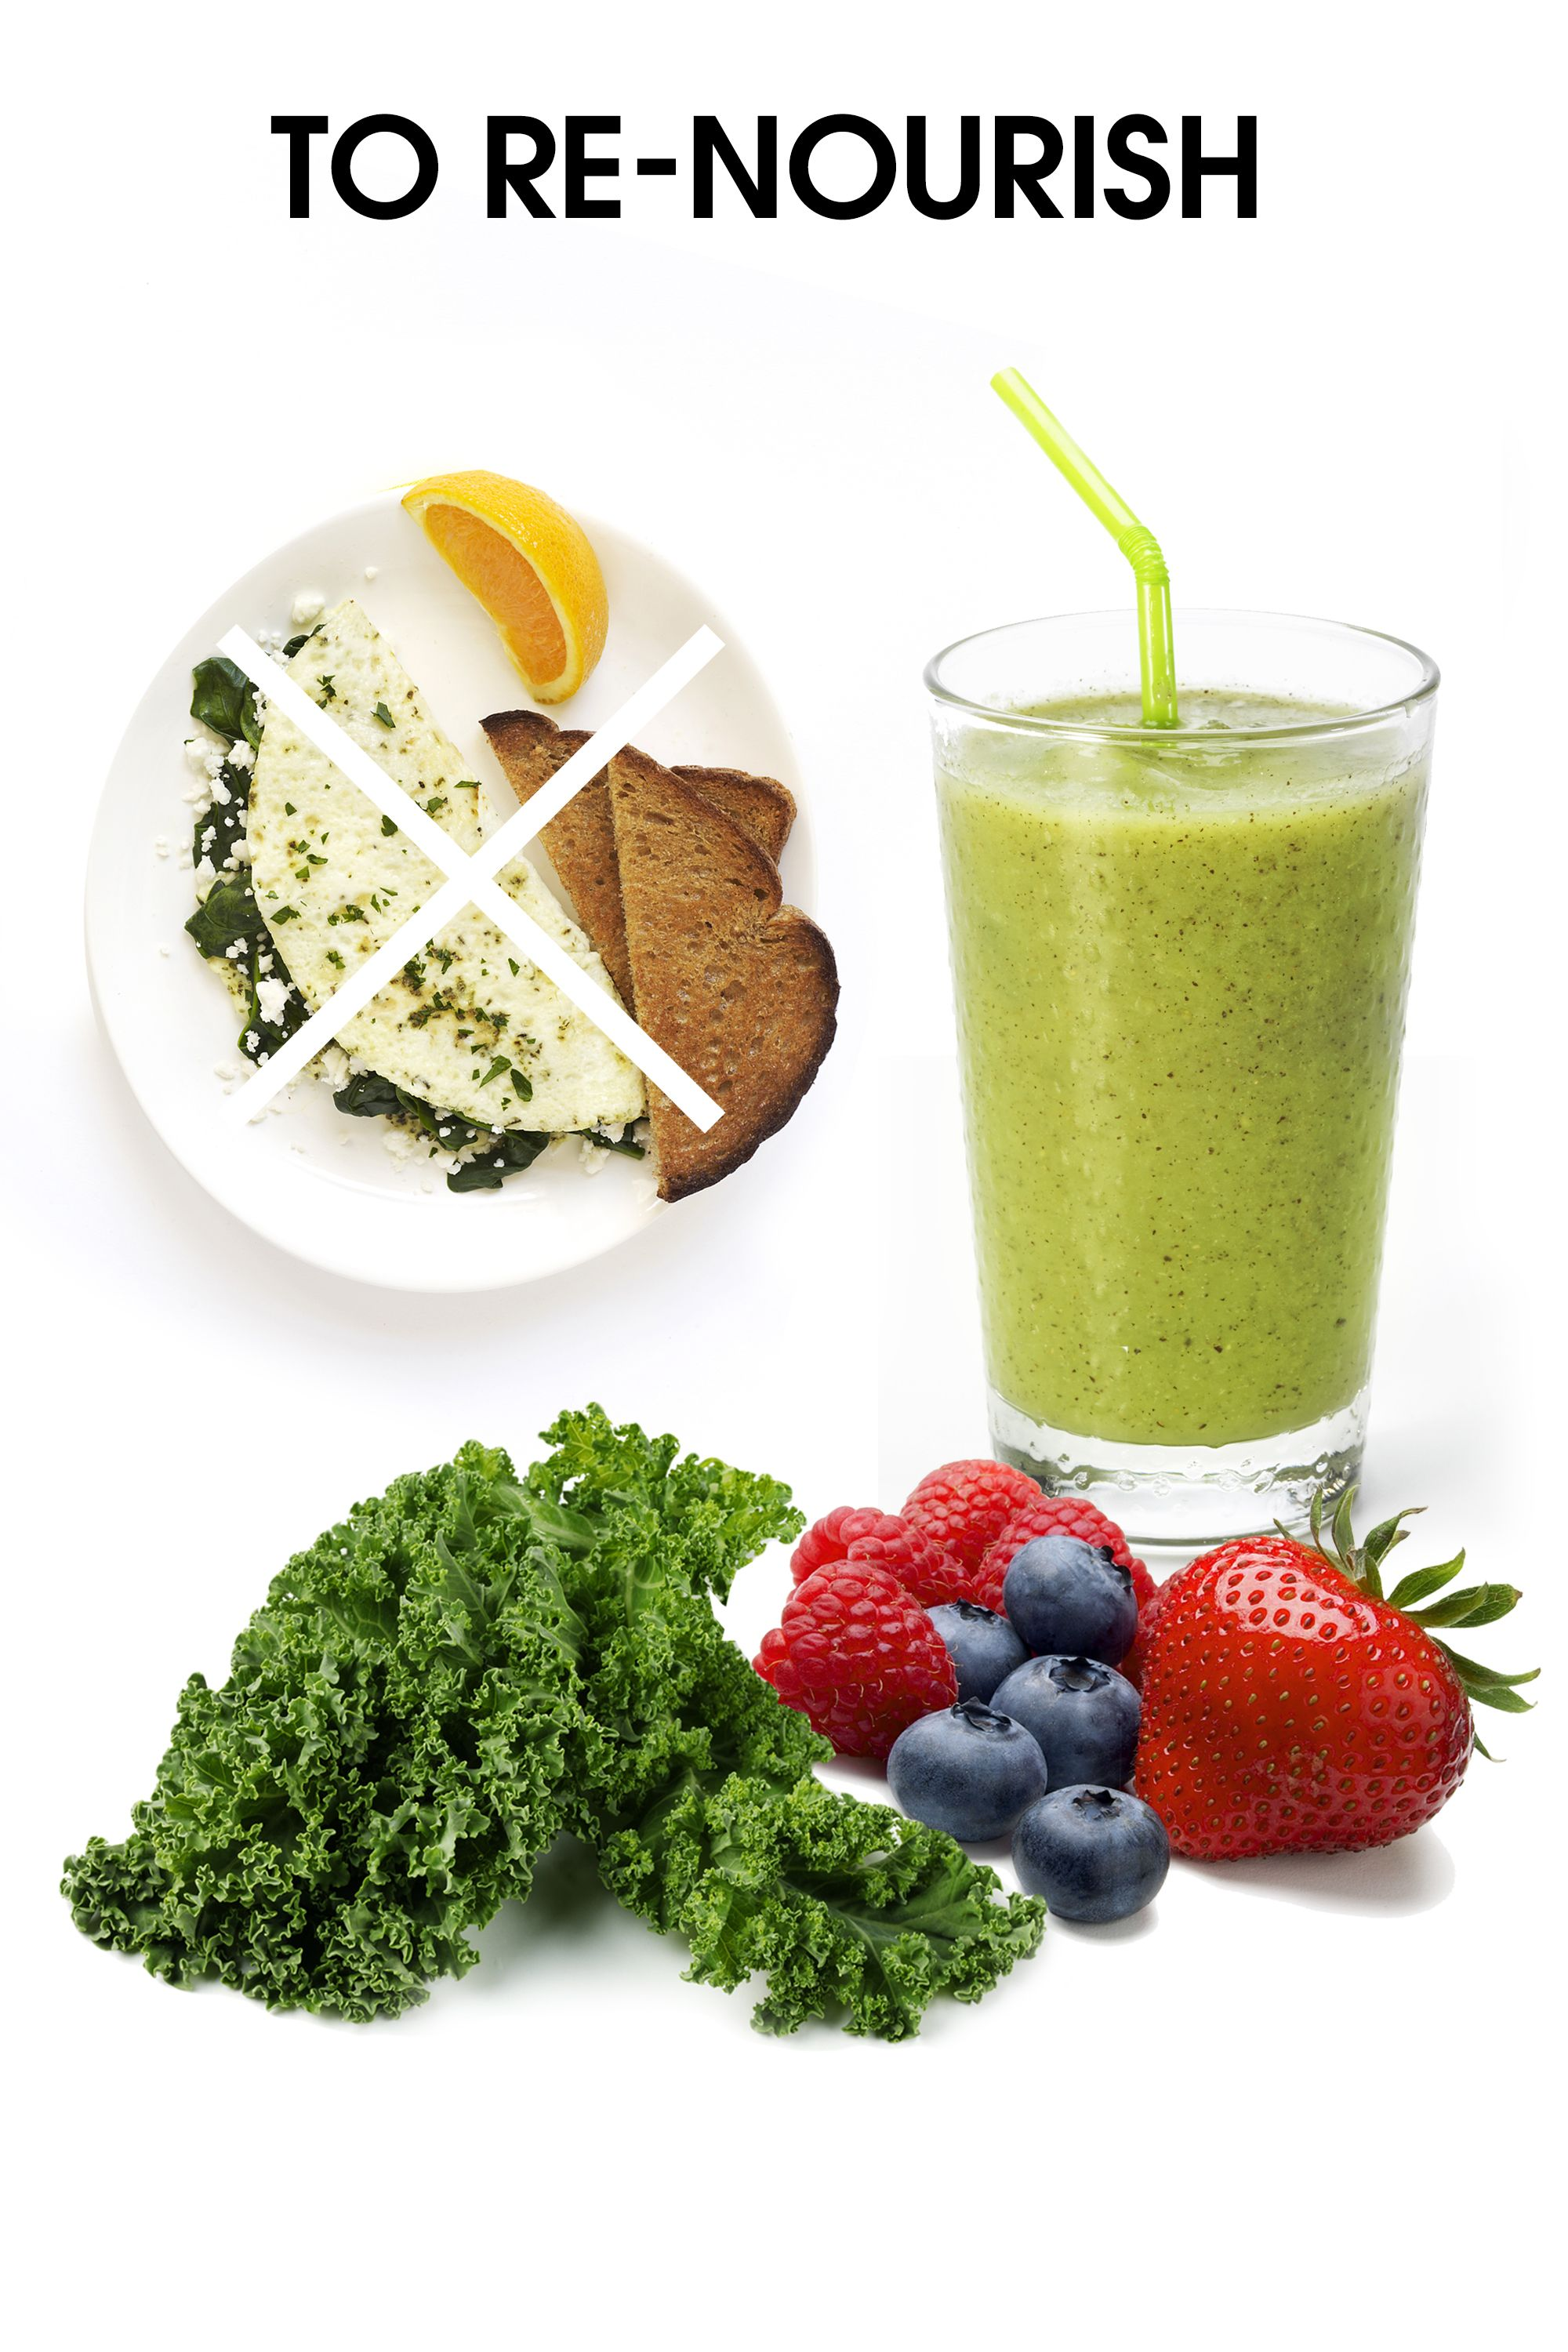 """<strong>Knock back a smoothie: </strong>""""This is very different from a green juice, which has had the fiber stripped out. In contrast, a smoothie made with fresh fruit and vegetables is a whole food, with the fiber and juice intact—the way that nature grew them. It will supply you with tons of antioxidants, vitamins, minerals, fiber, and amino acids to build protein in the body (yes, greens have lots of protein, if you eat enough of them in a blended form!). The fiber content also keeps things moving through your body.""""  <strong>Pass on the omelet: </strong> """"I am not a big advocate of having heavy amounts of fat or protein in the morning. Such foods may make you feel full (such as egg white omelets), but they also take a huge amount of digestive energy, and you may find yourself reaching for more energy from caffeinated beverages by mid-morning. So think fiber for movement and fullness over super heavy fat/protein. Of course, we all need fat and some concentrated protein, but these things can come later in the day."""""""